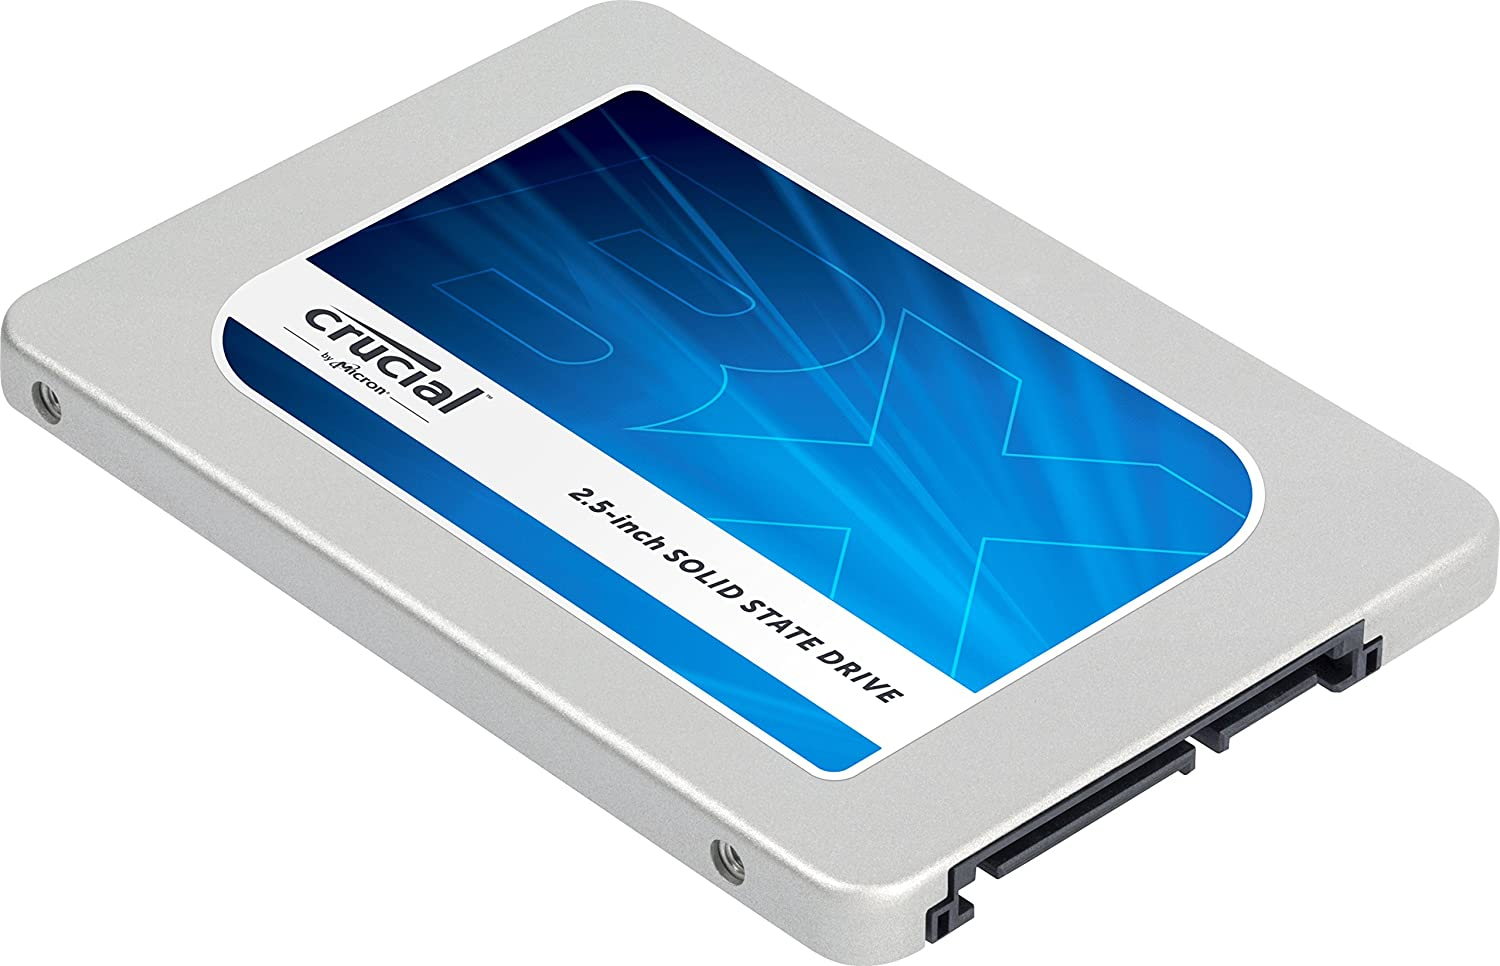 Crucial BX200 SSD